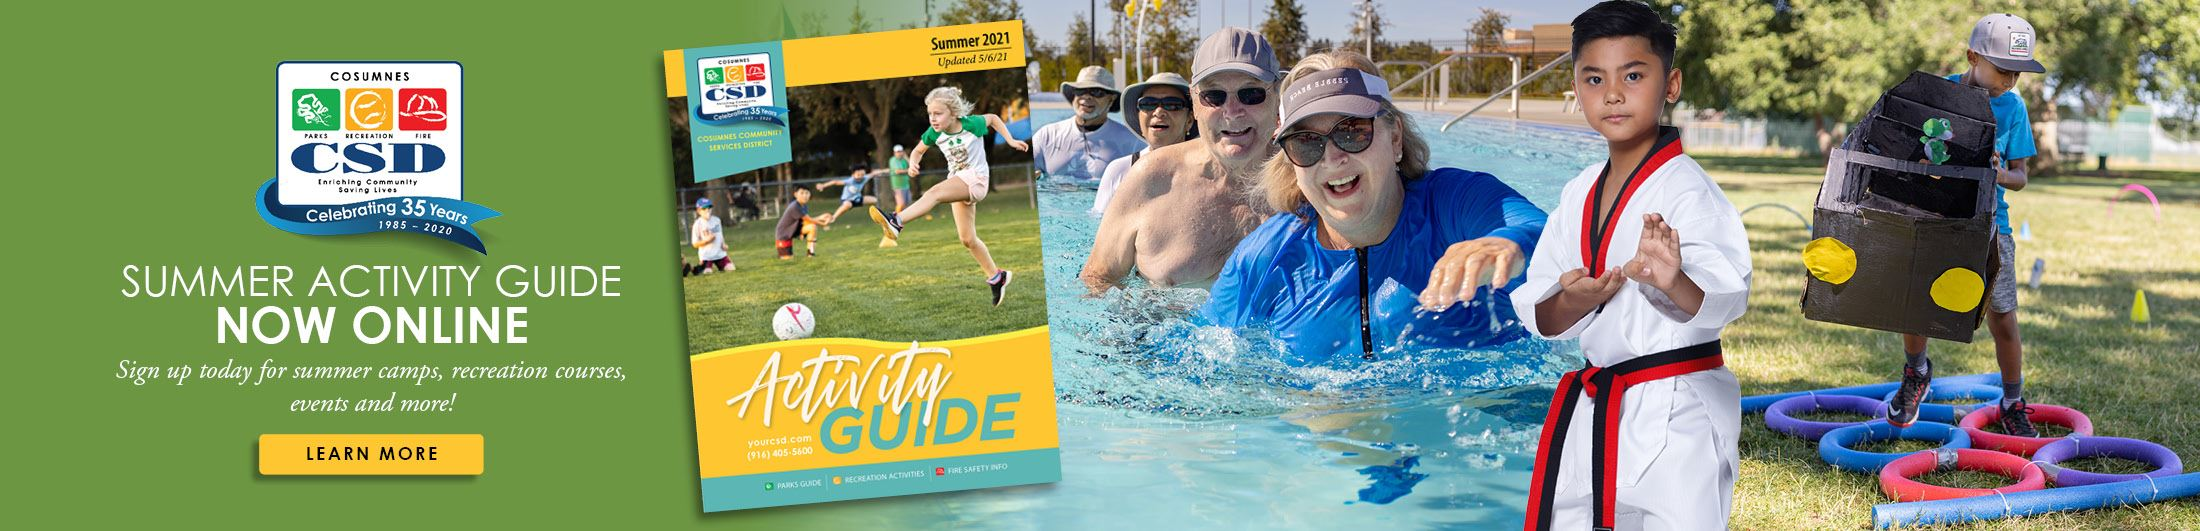 Summer Activity Guide cover with collage of people participating in summer activities